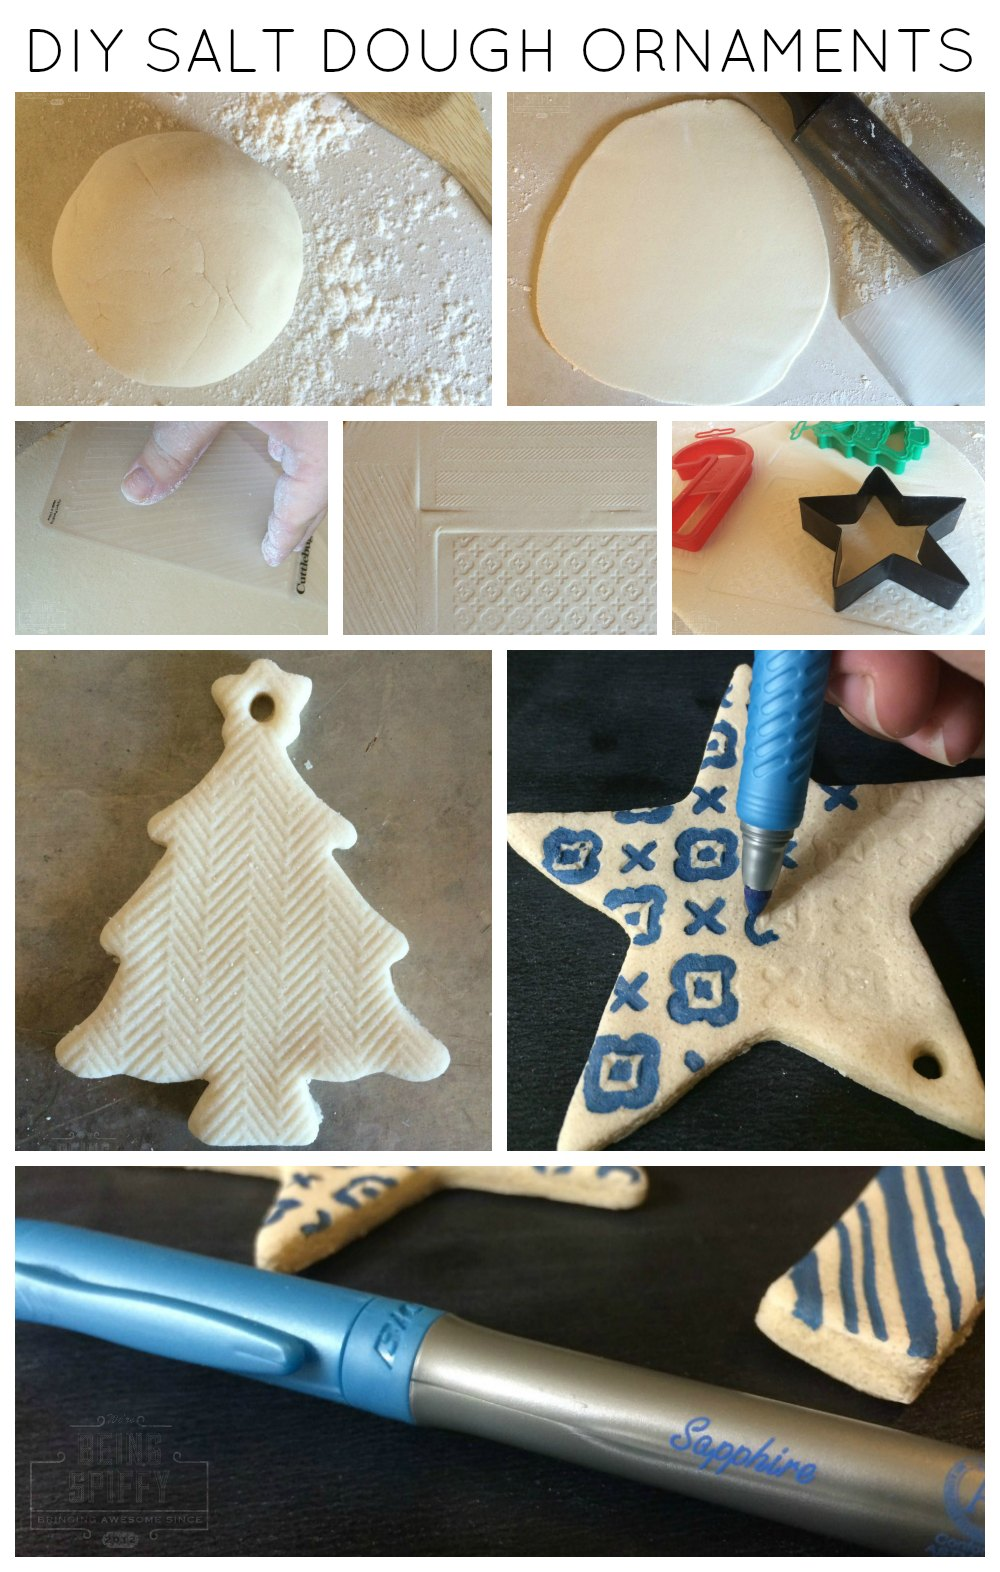 Diy salt dough ornaments being spiffy it was so darn simple i cant believe id never made it before i shall now share the secrets of the salt dough ornament with you prepare yourself to be solutioingenieria Choice Image